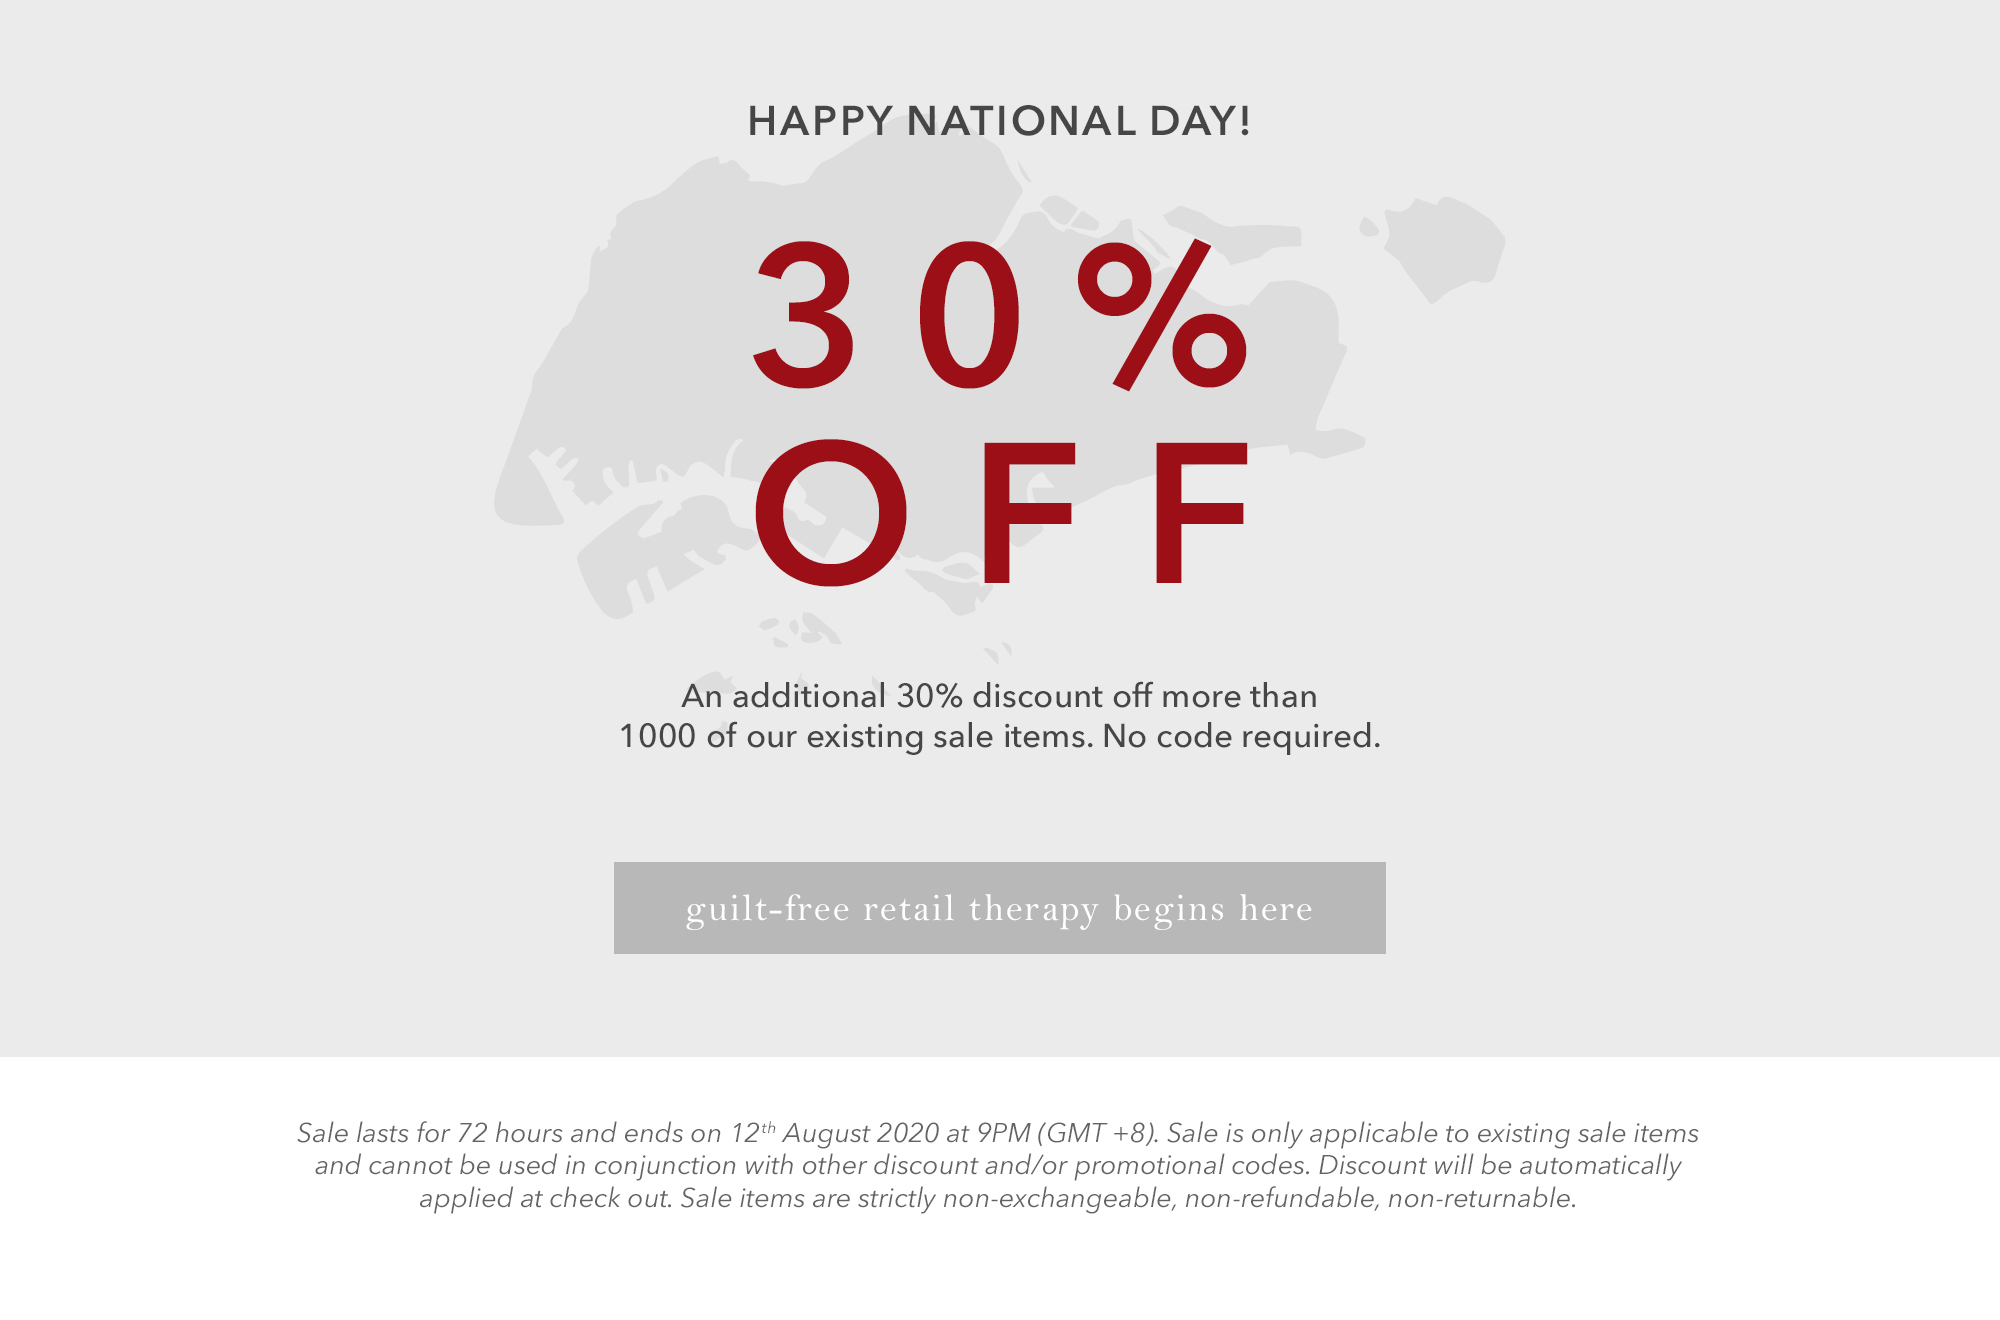 National Day Sale 2020